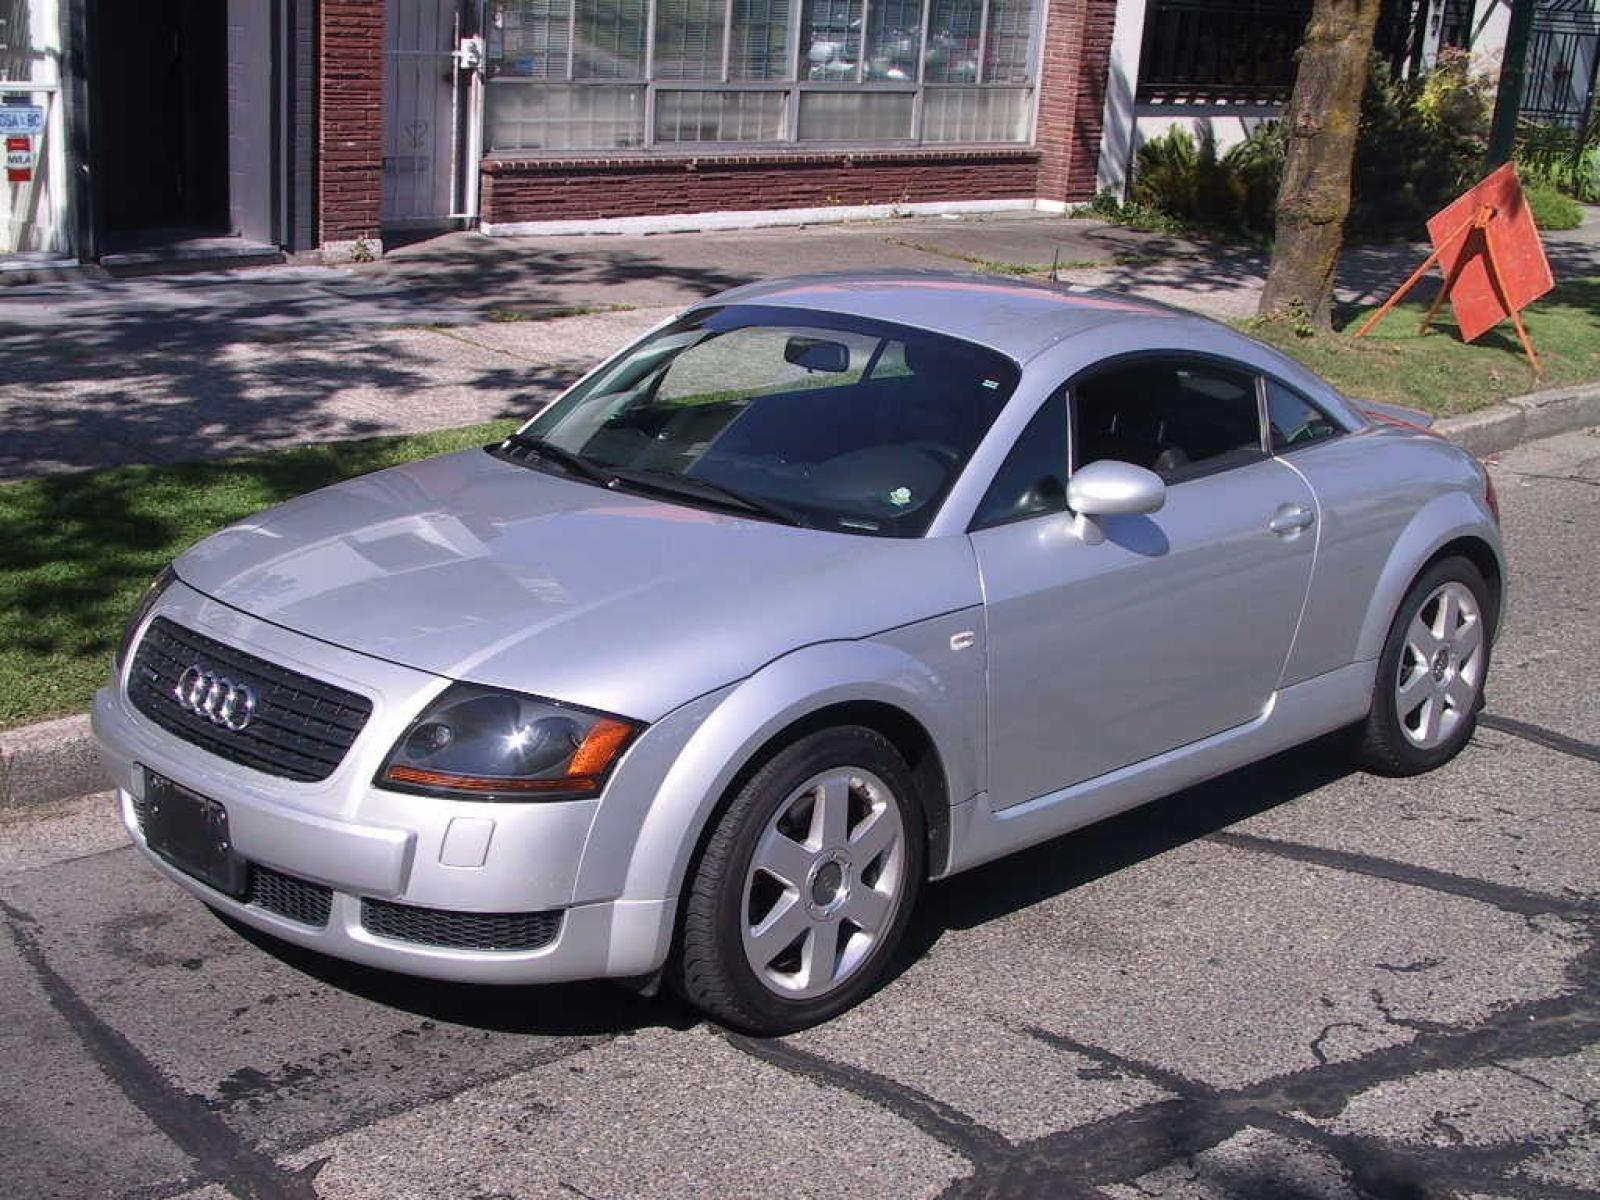 Audi TT Information And Photos ZombieDrive - 2001 audi tt quattro